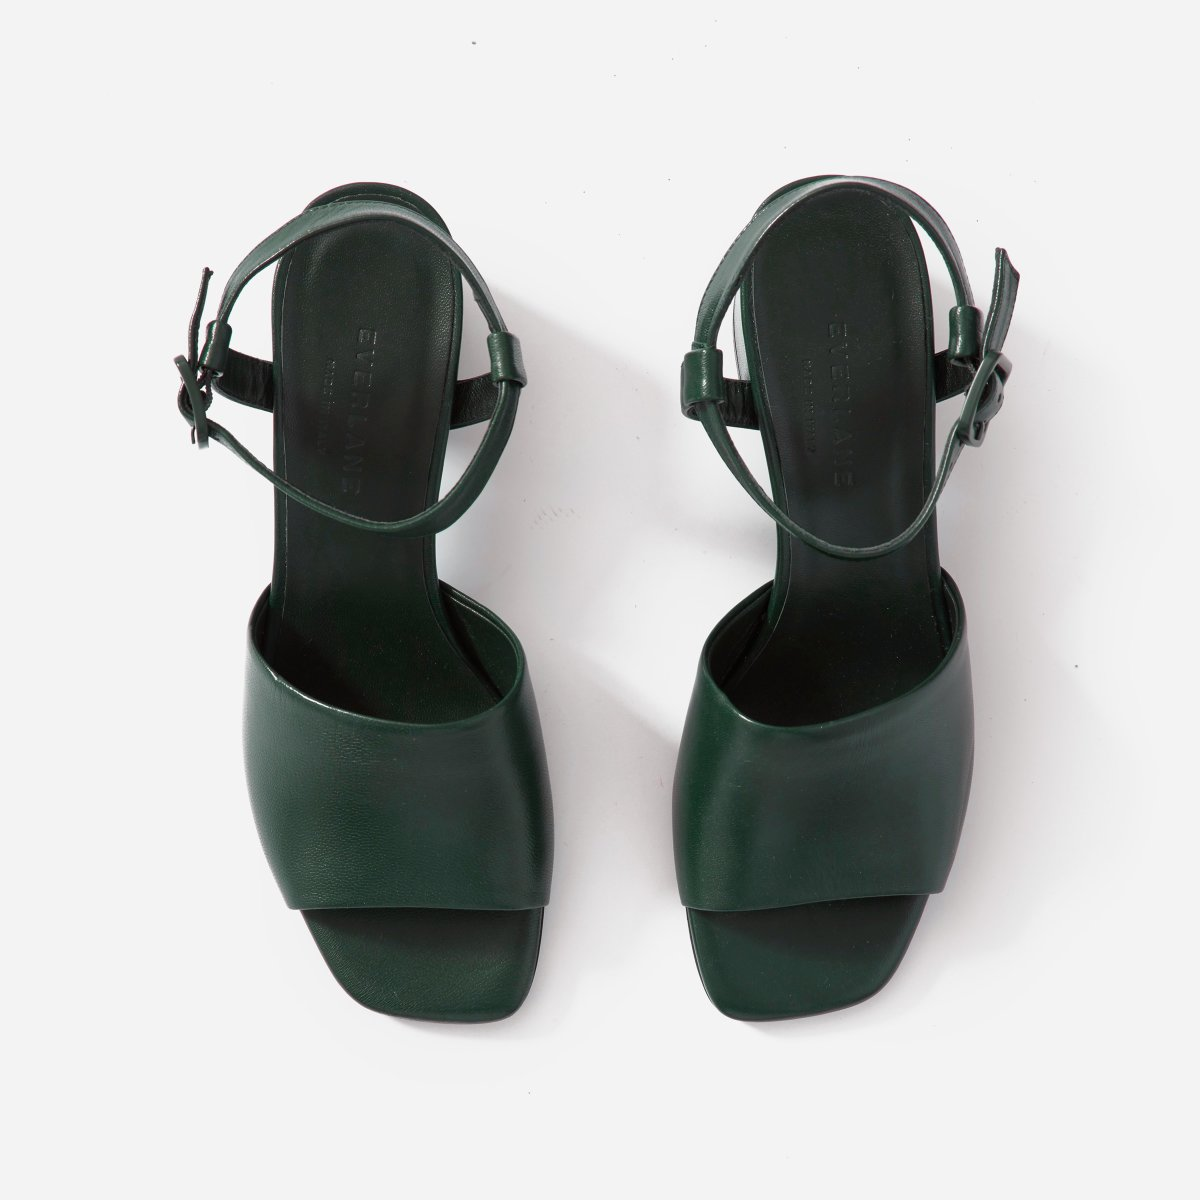 2ab26ff6c16e Your browser does not support HTML5 video. Here is the link to the video w  heeled sandal dark green mona.